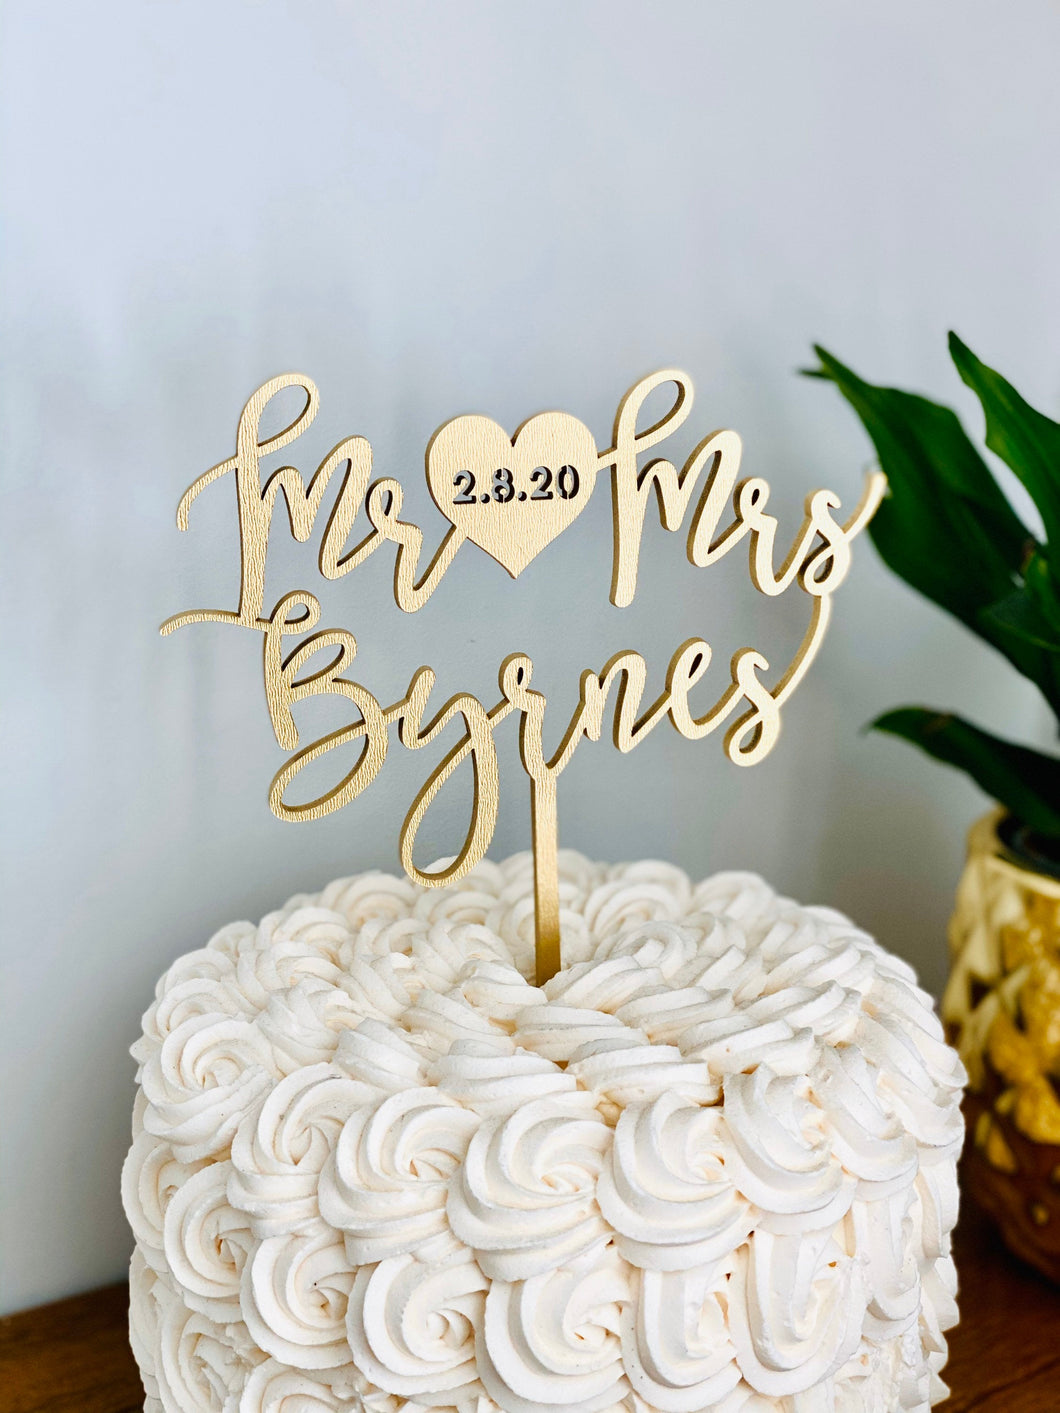 Personalized Mr Heart Mrs Name Cake Topper with Date, 6